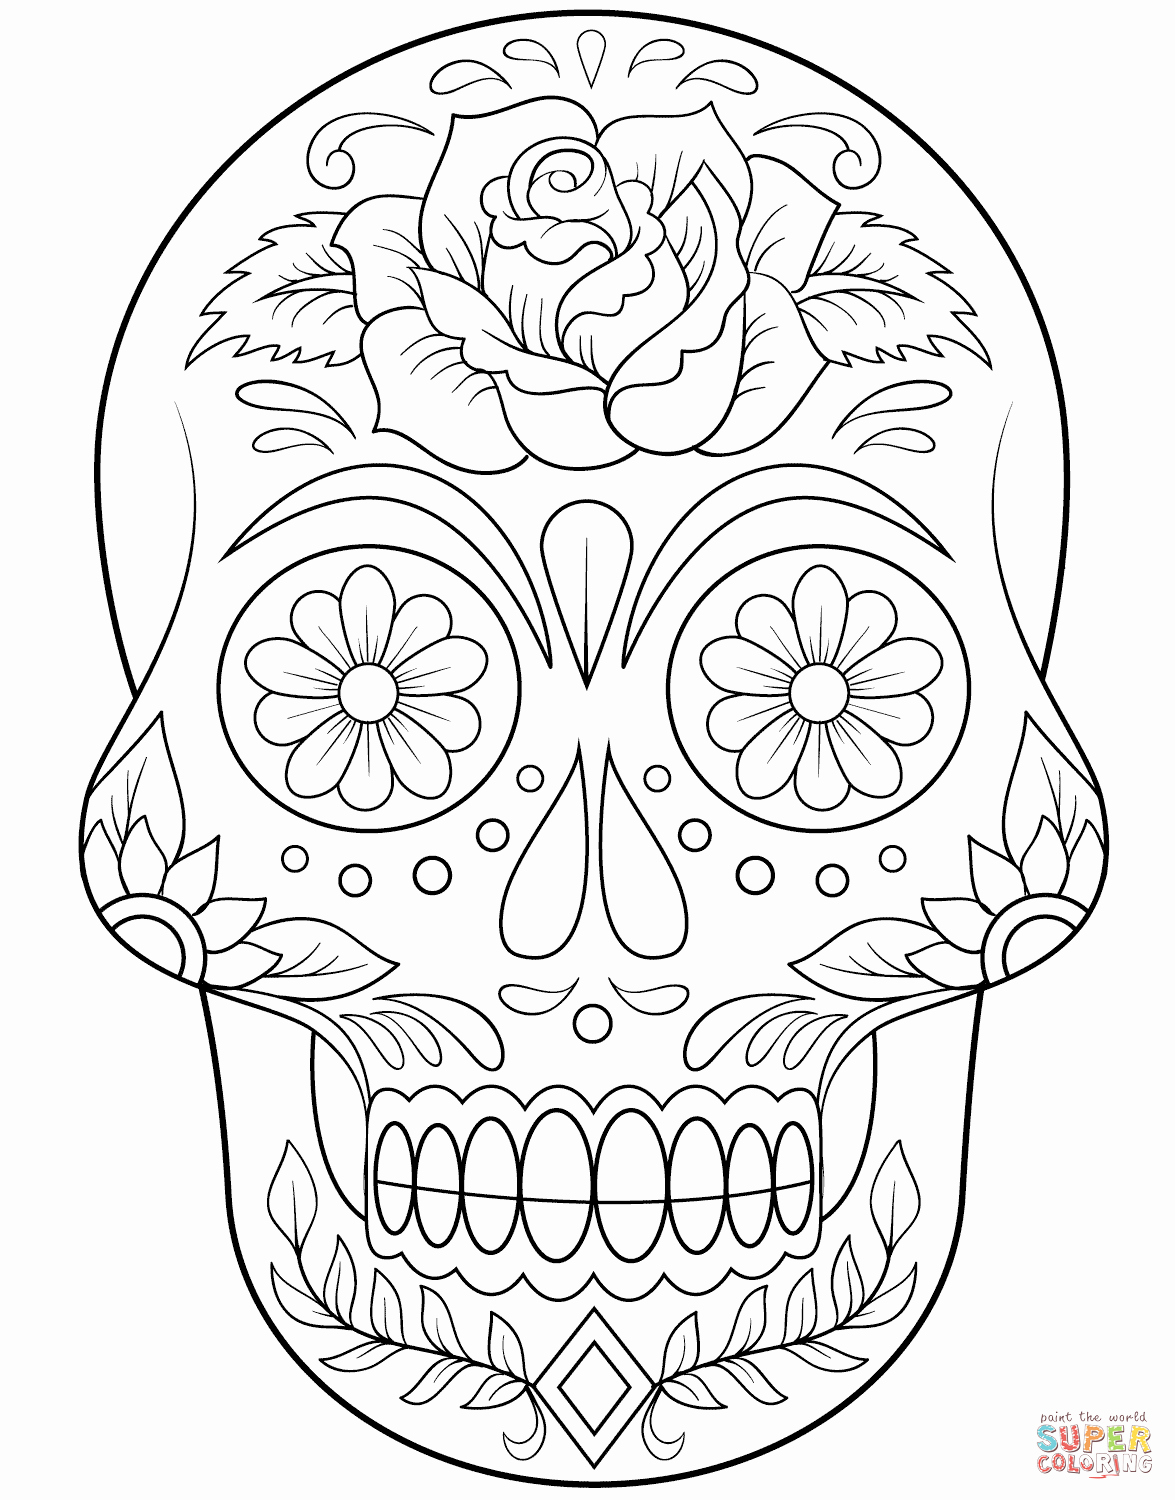 Sugar Skull Outlines Inspirational Sugar Skull with Flowers Coloring Page